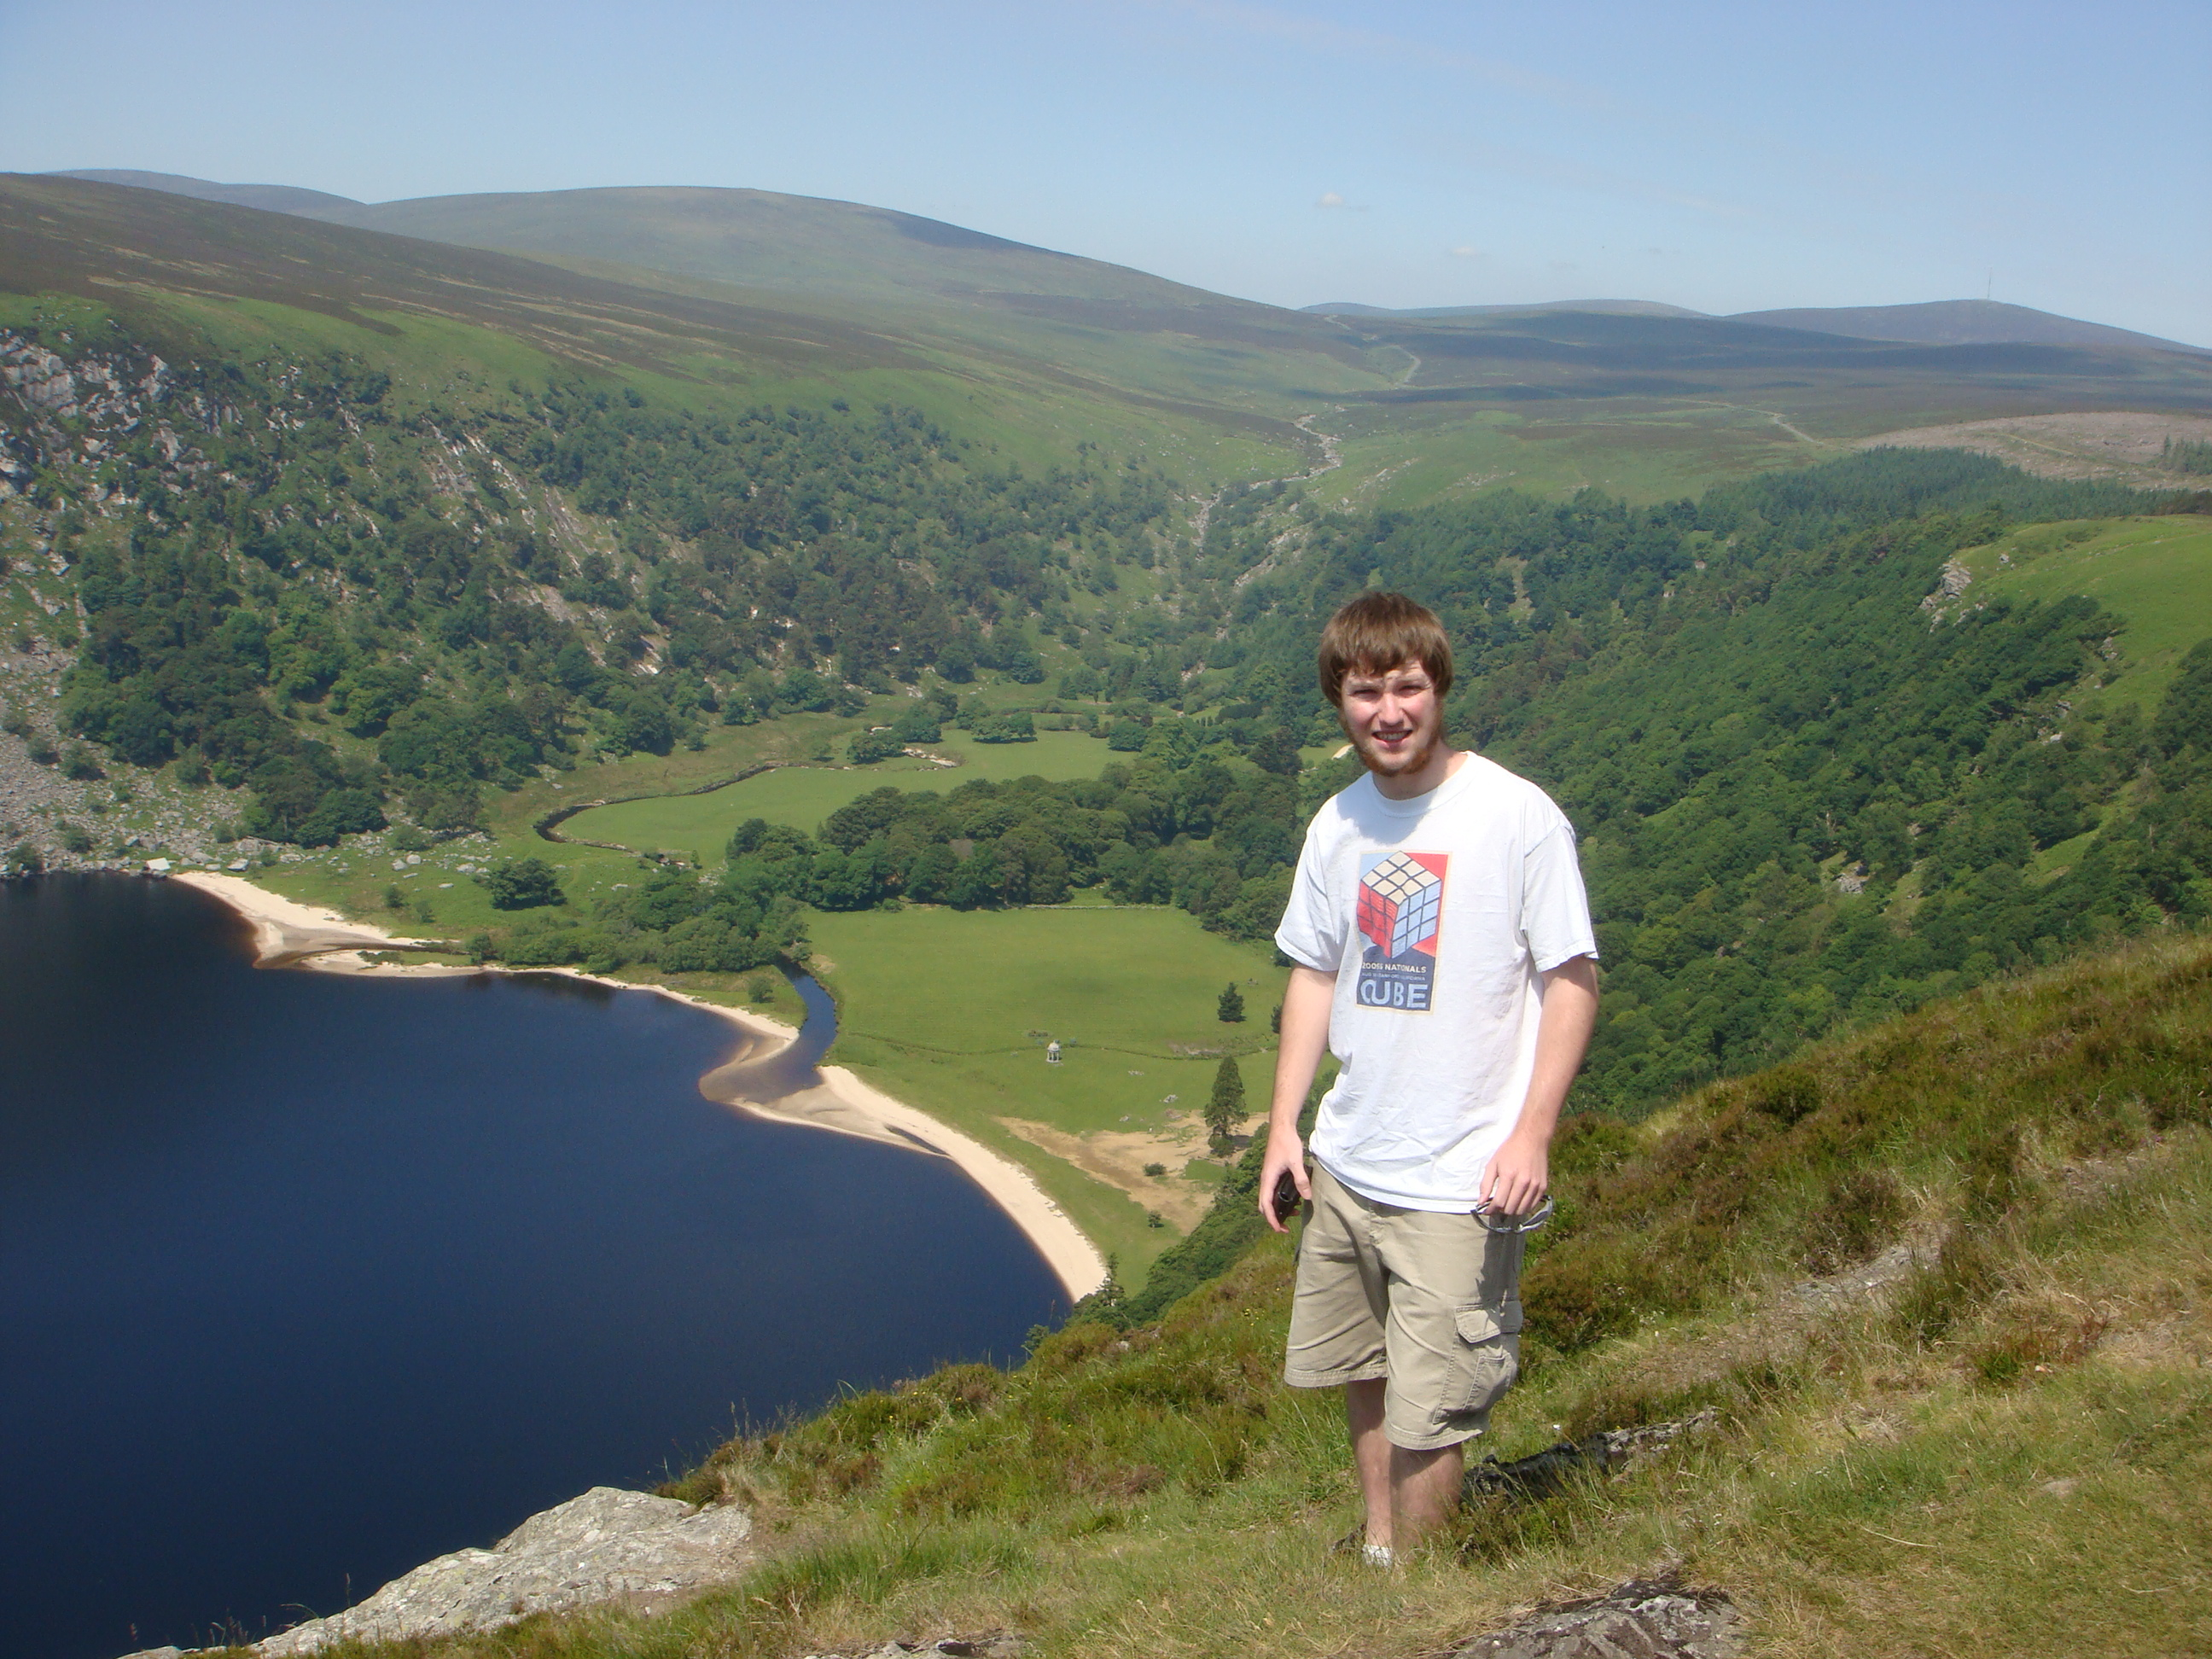 Me in front of Guinness Lake in eastern Ireland, south of Dublin.